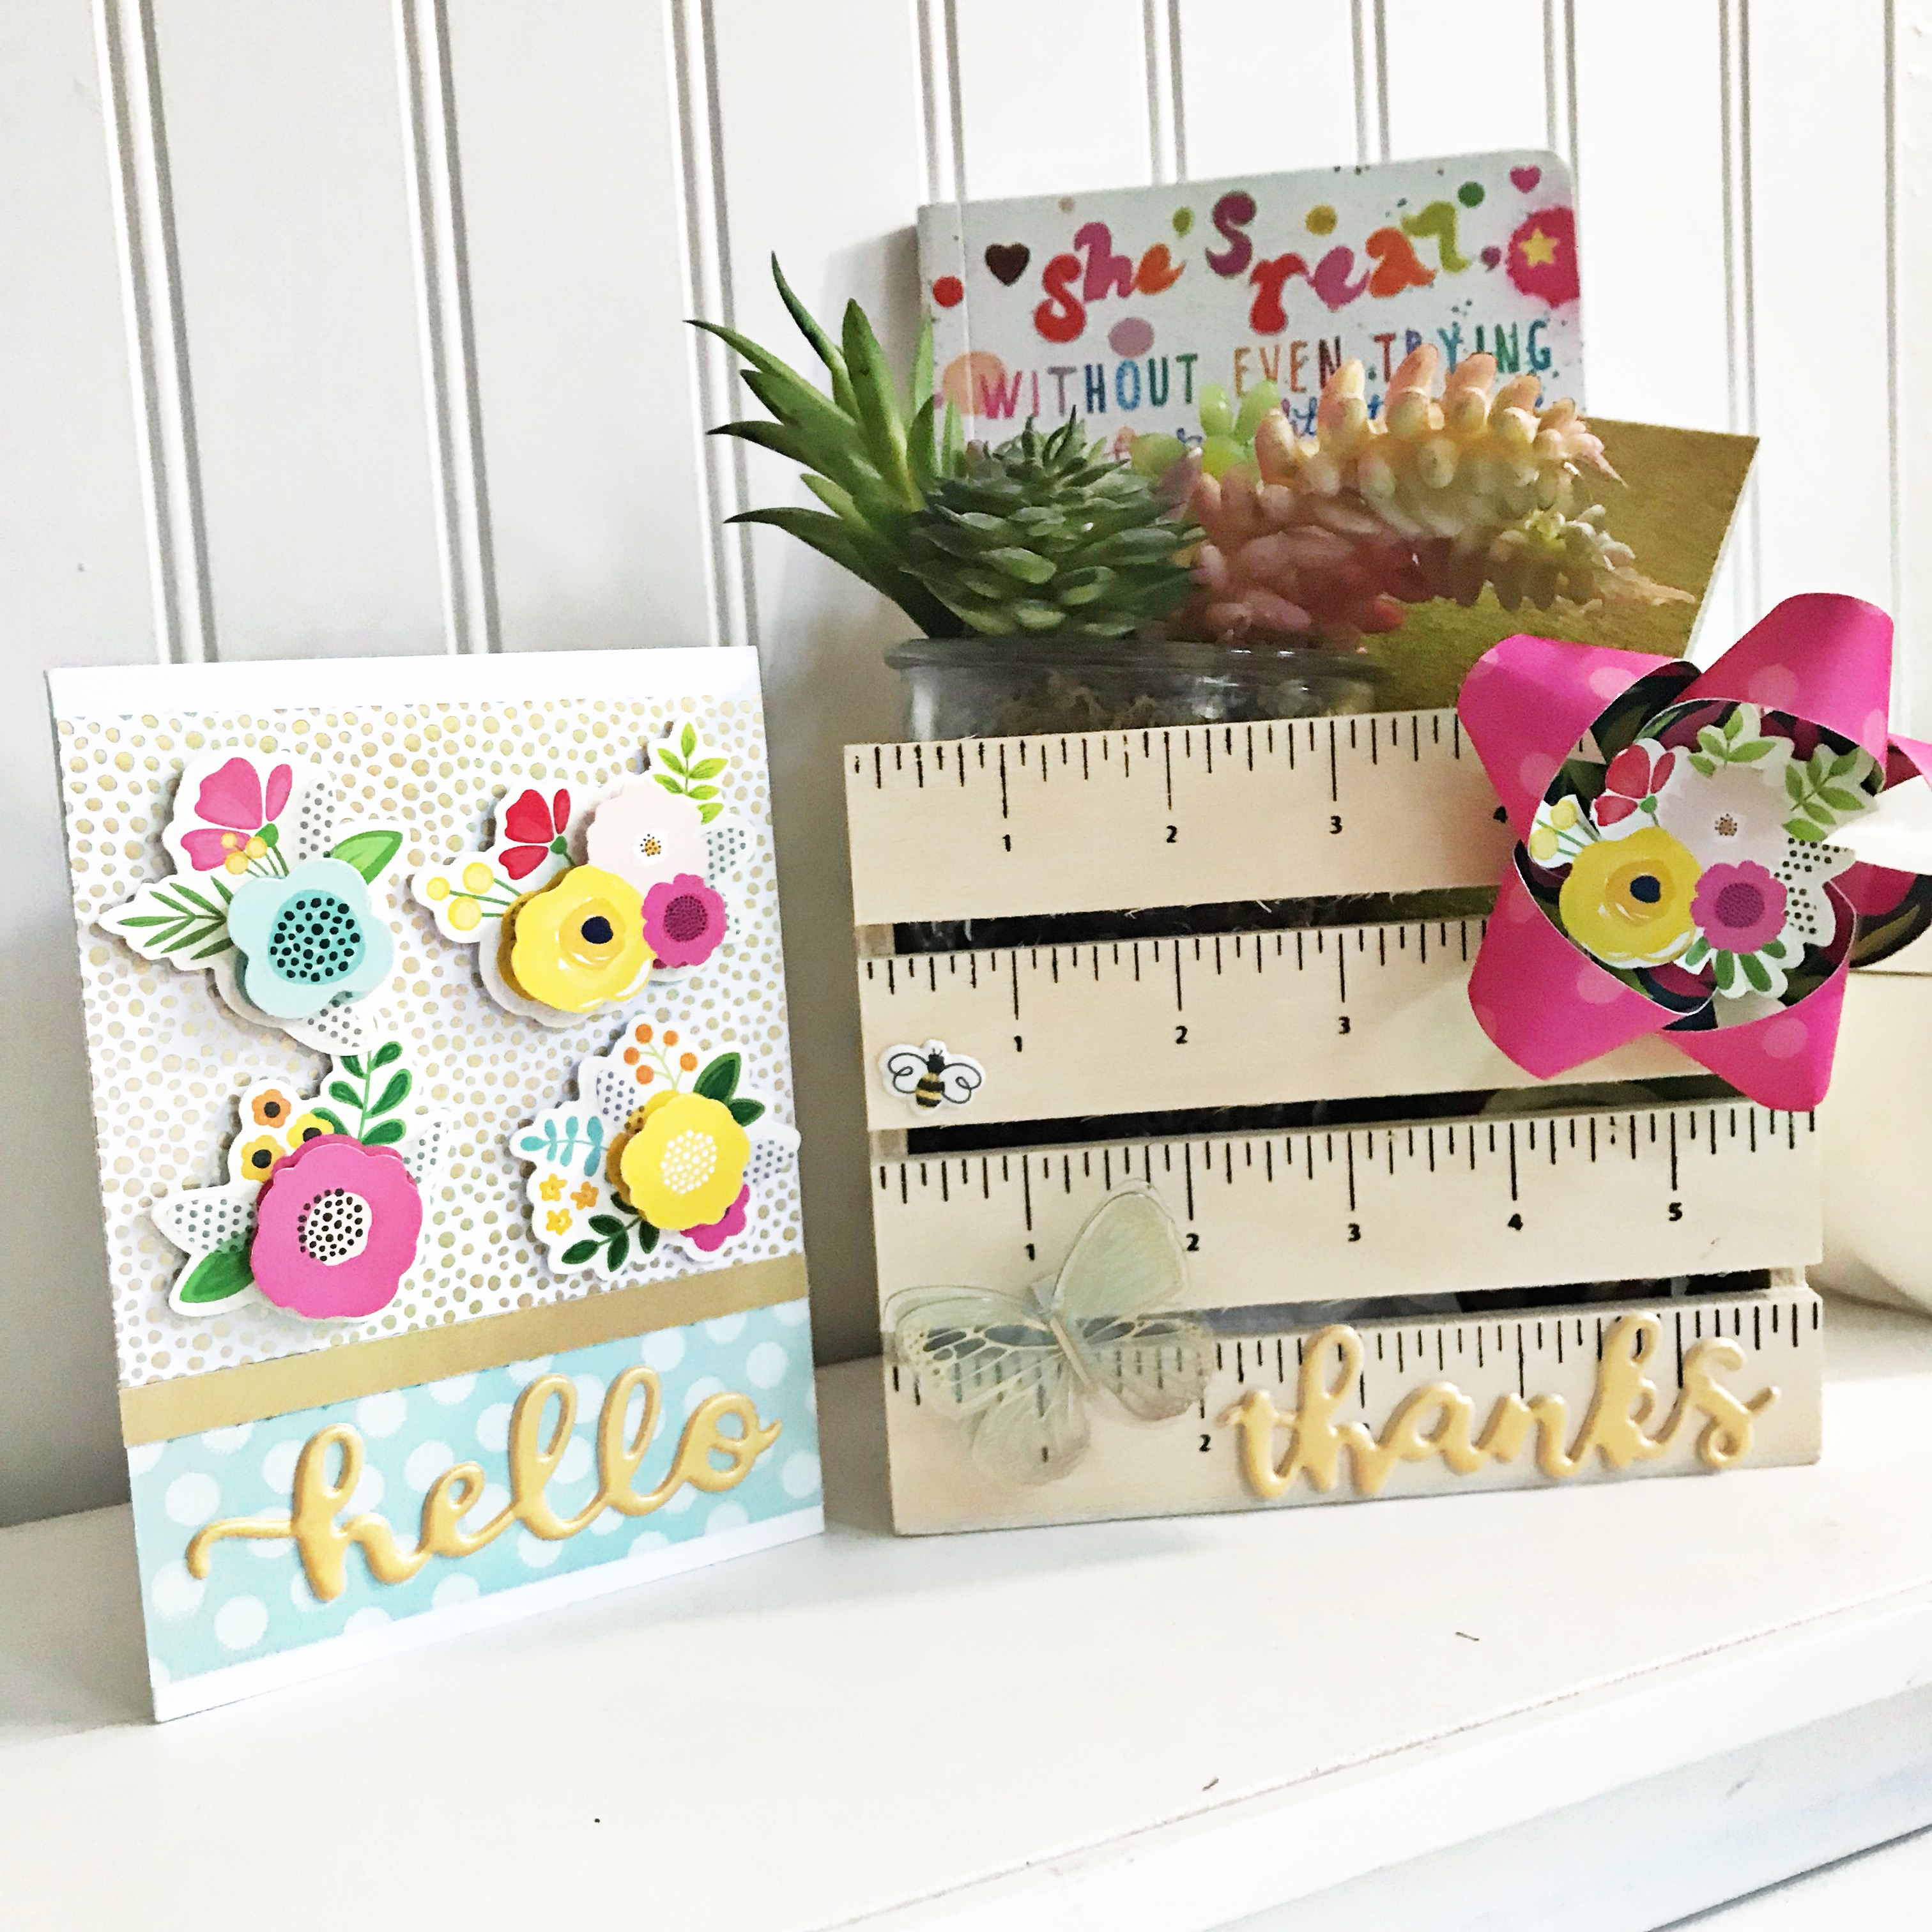 Teacher Gift Idea by @HeatherLeopard using @pebblesinc #patioparty collection #madewithpebbles #cards #teacher #teachergift #gift